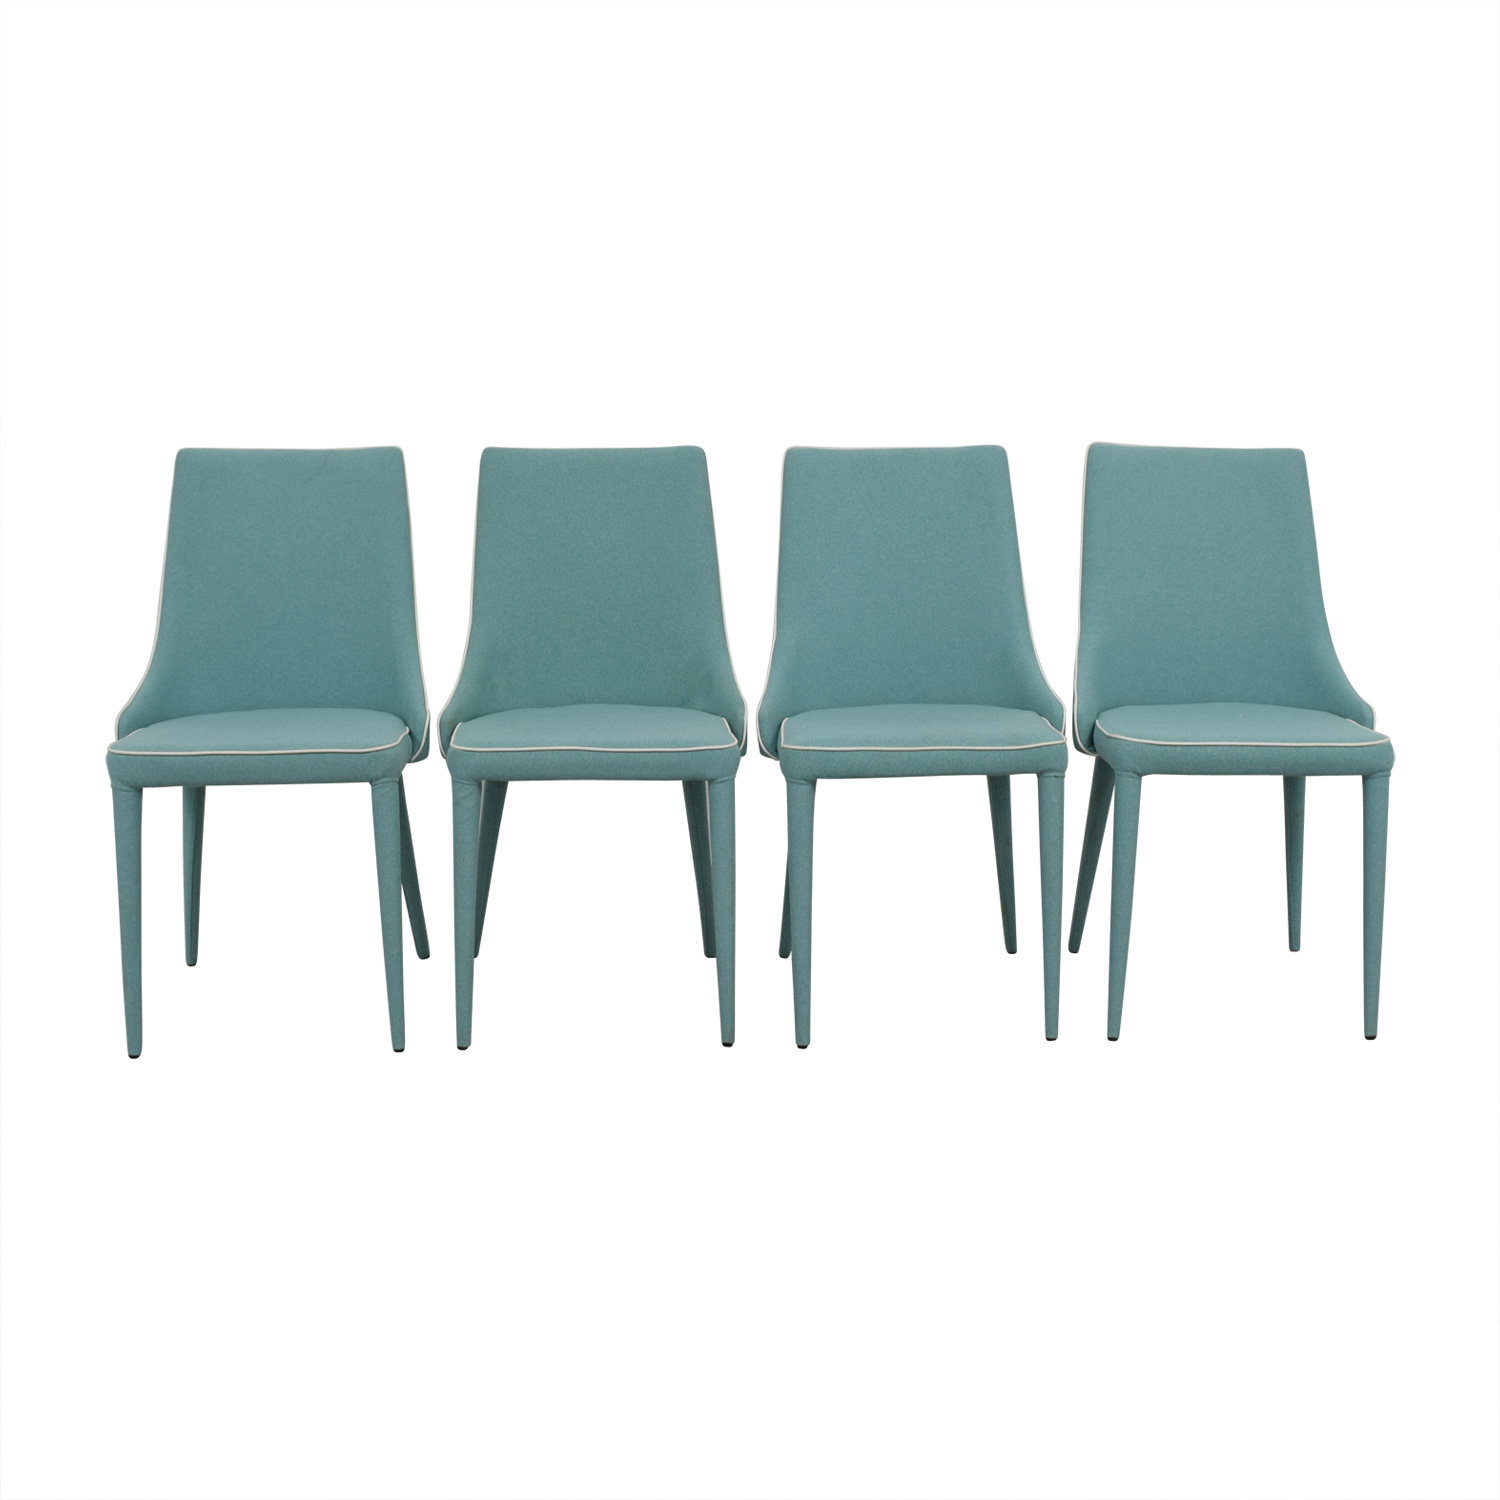 buy Inmod Turquoise Fabric Chair Inmod Dining Chairs